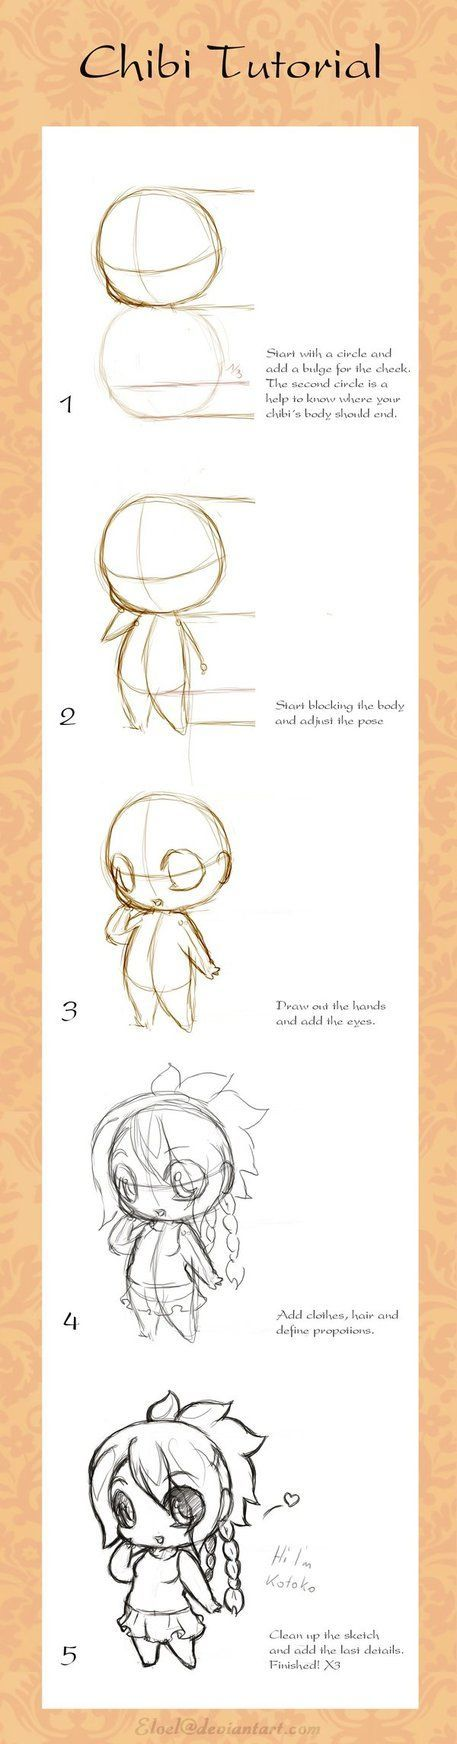 best drawing images on pinterest drawing ideas drawing